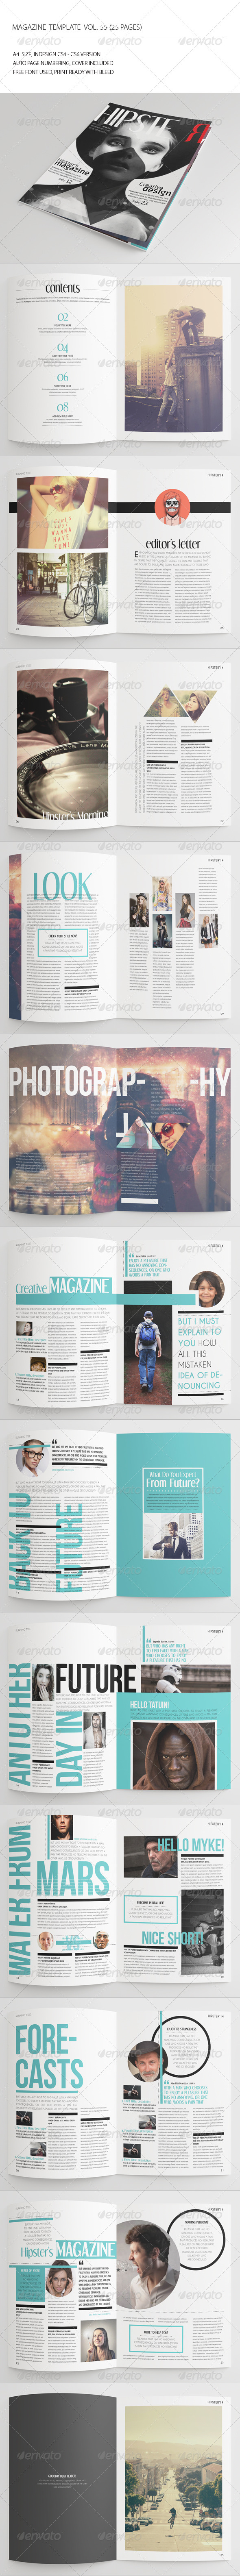 GraphicRiver 25 Pages Hipster Magazine Vol55 7738074